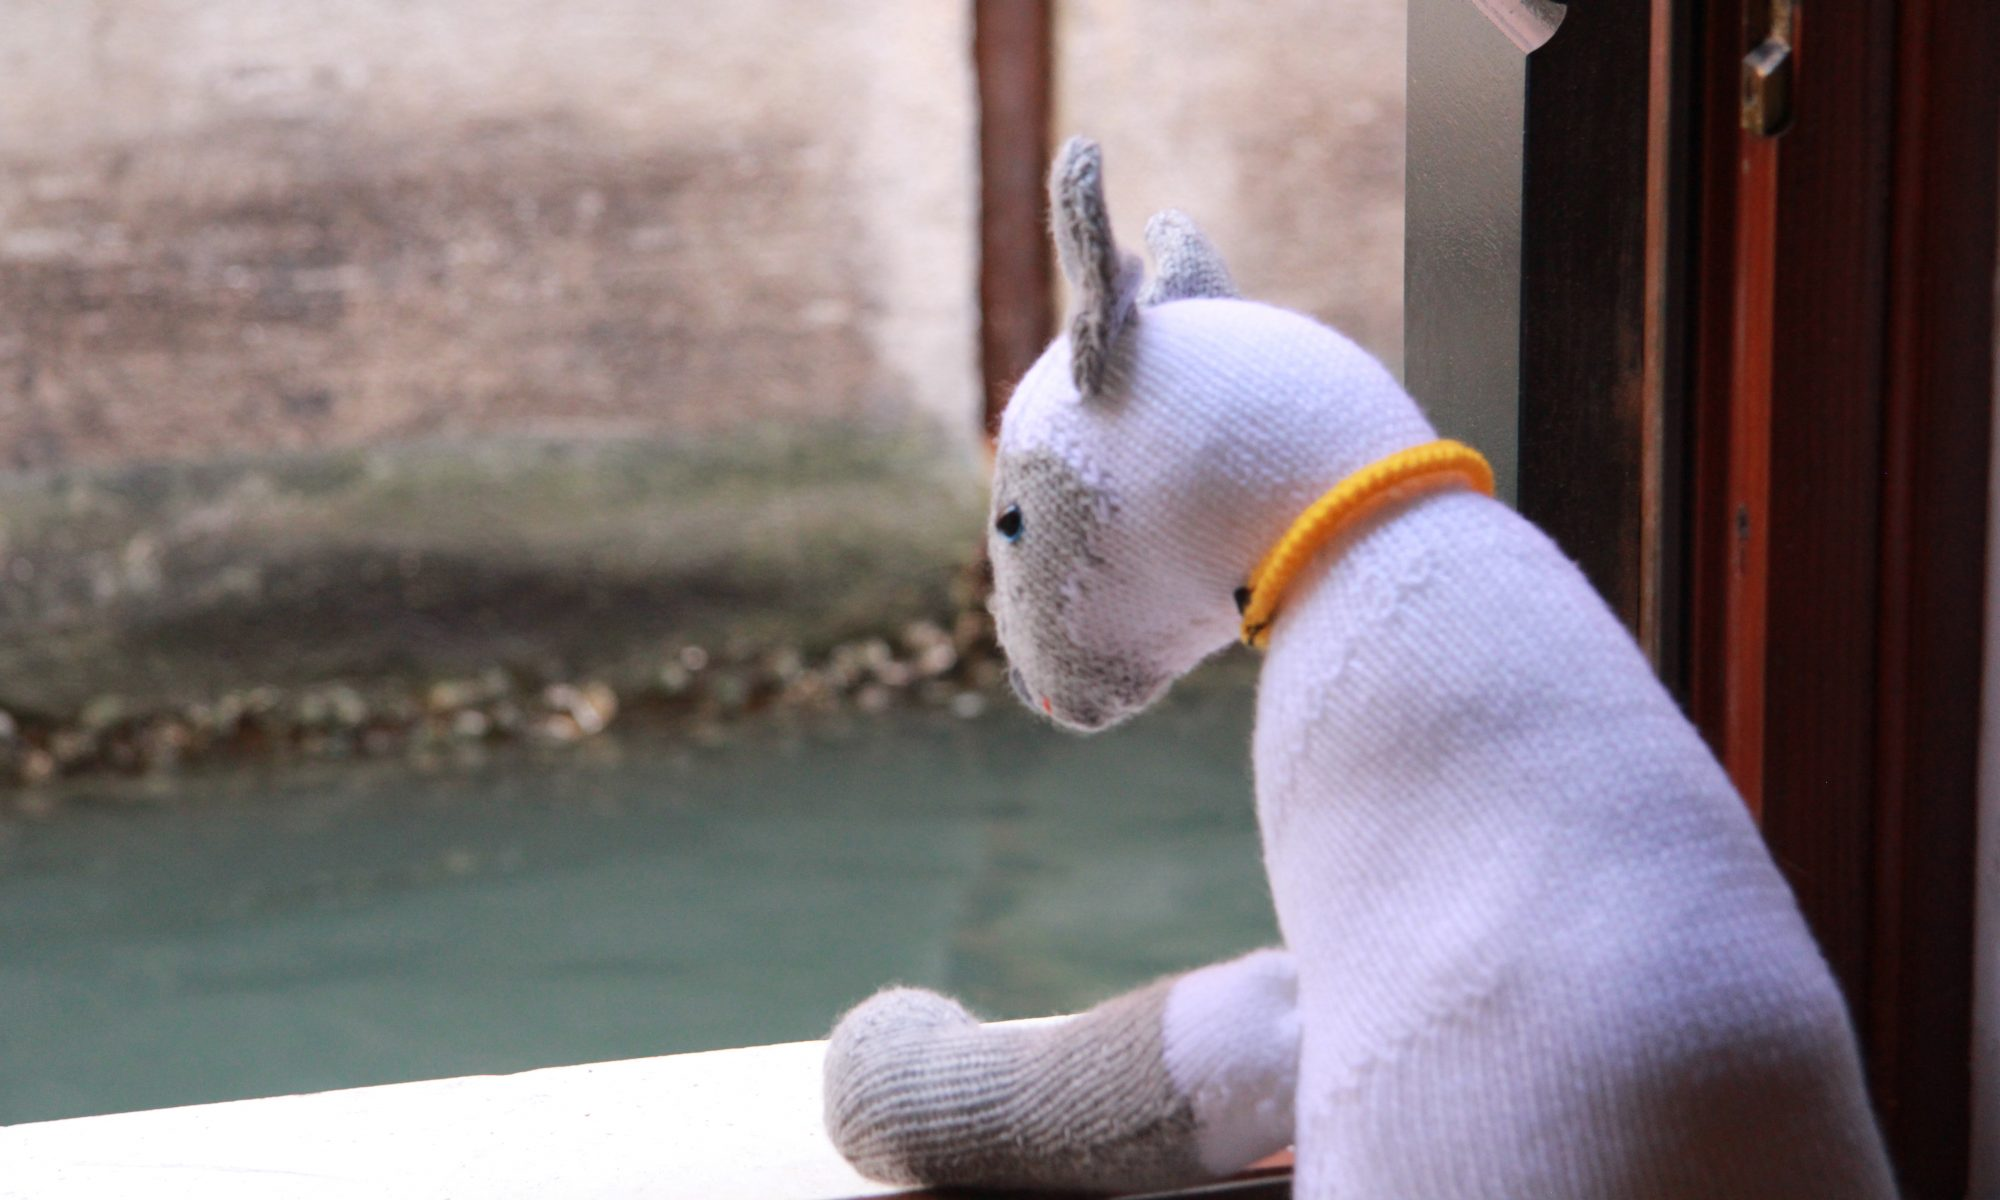 Clarabella the knitted cat looking at a canal in Venice